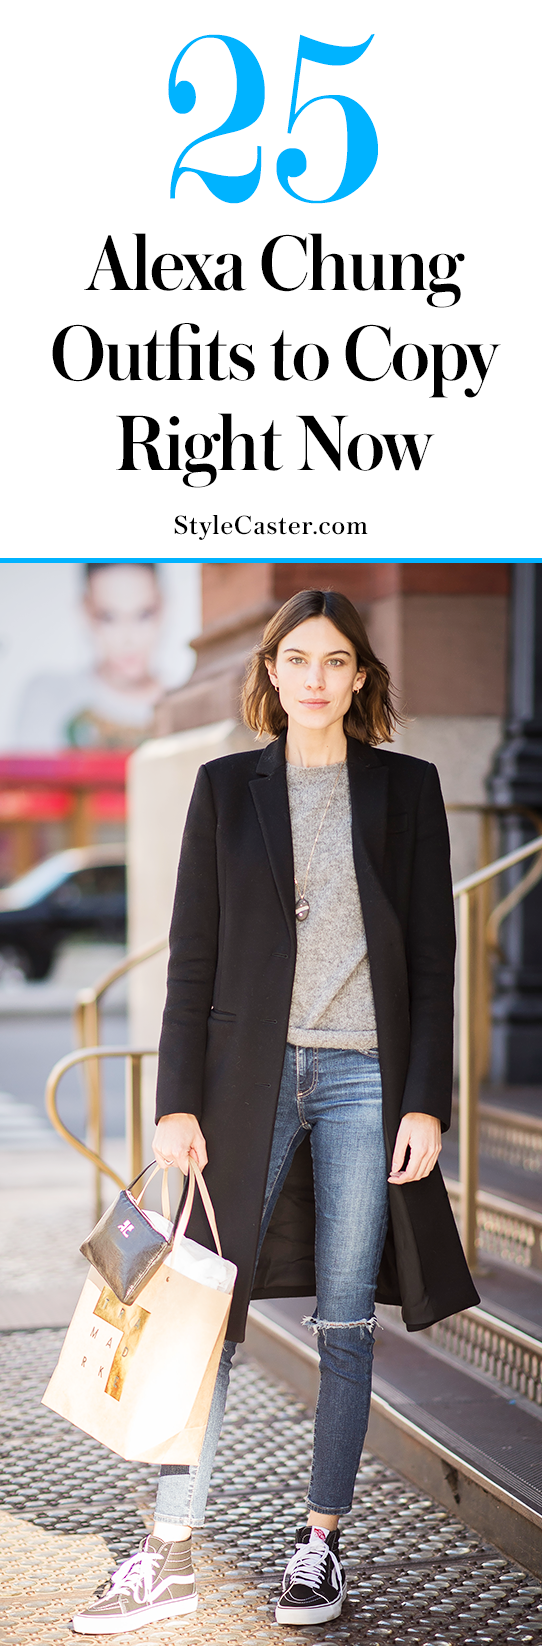 25 cool Alexa Chung outfits to copy right now | Fall casual—tailored wool coat, ripped denim + Van's sneakers | (Sponsored)